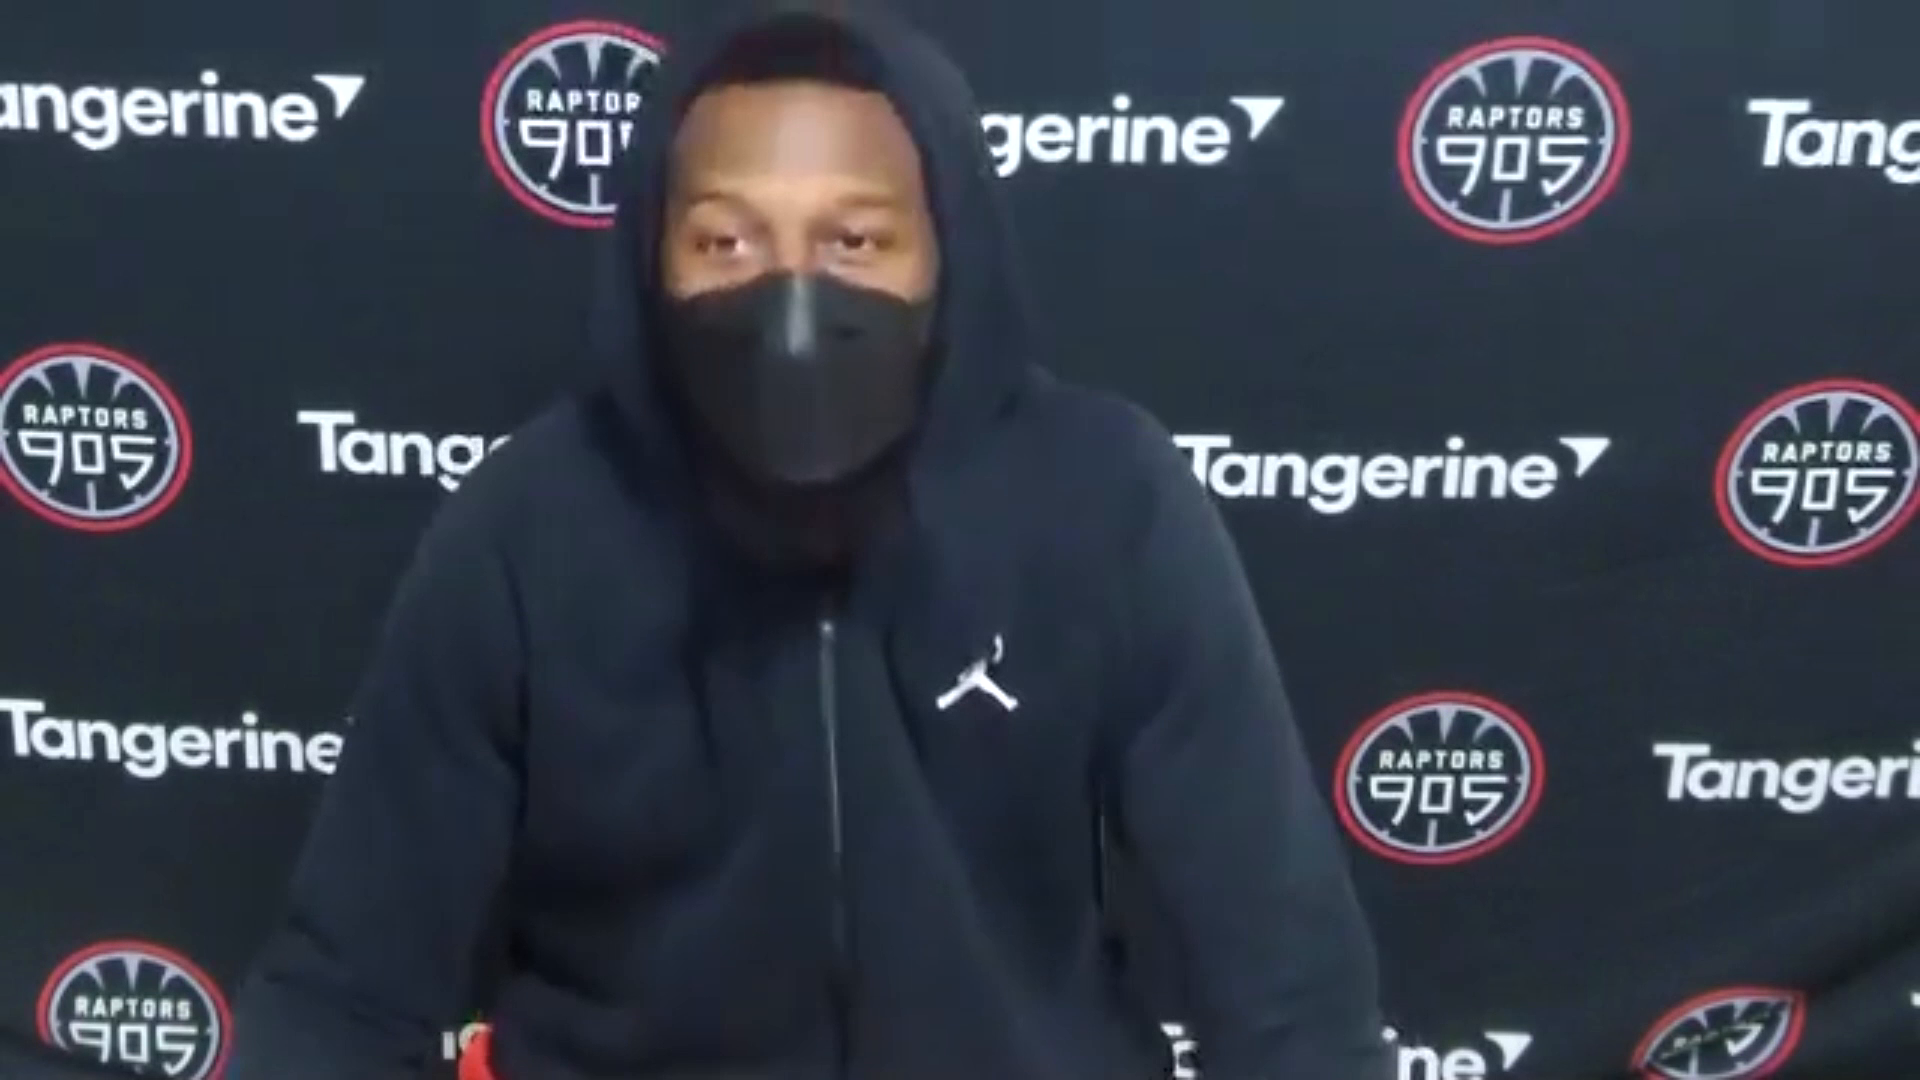 Raptors 905 Post Game: Donta Hall - February 26, 2021